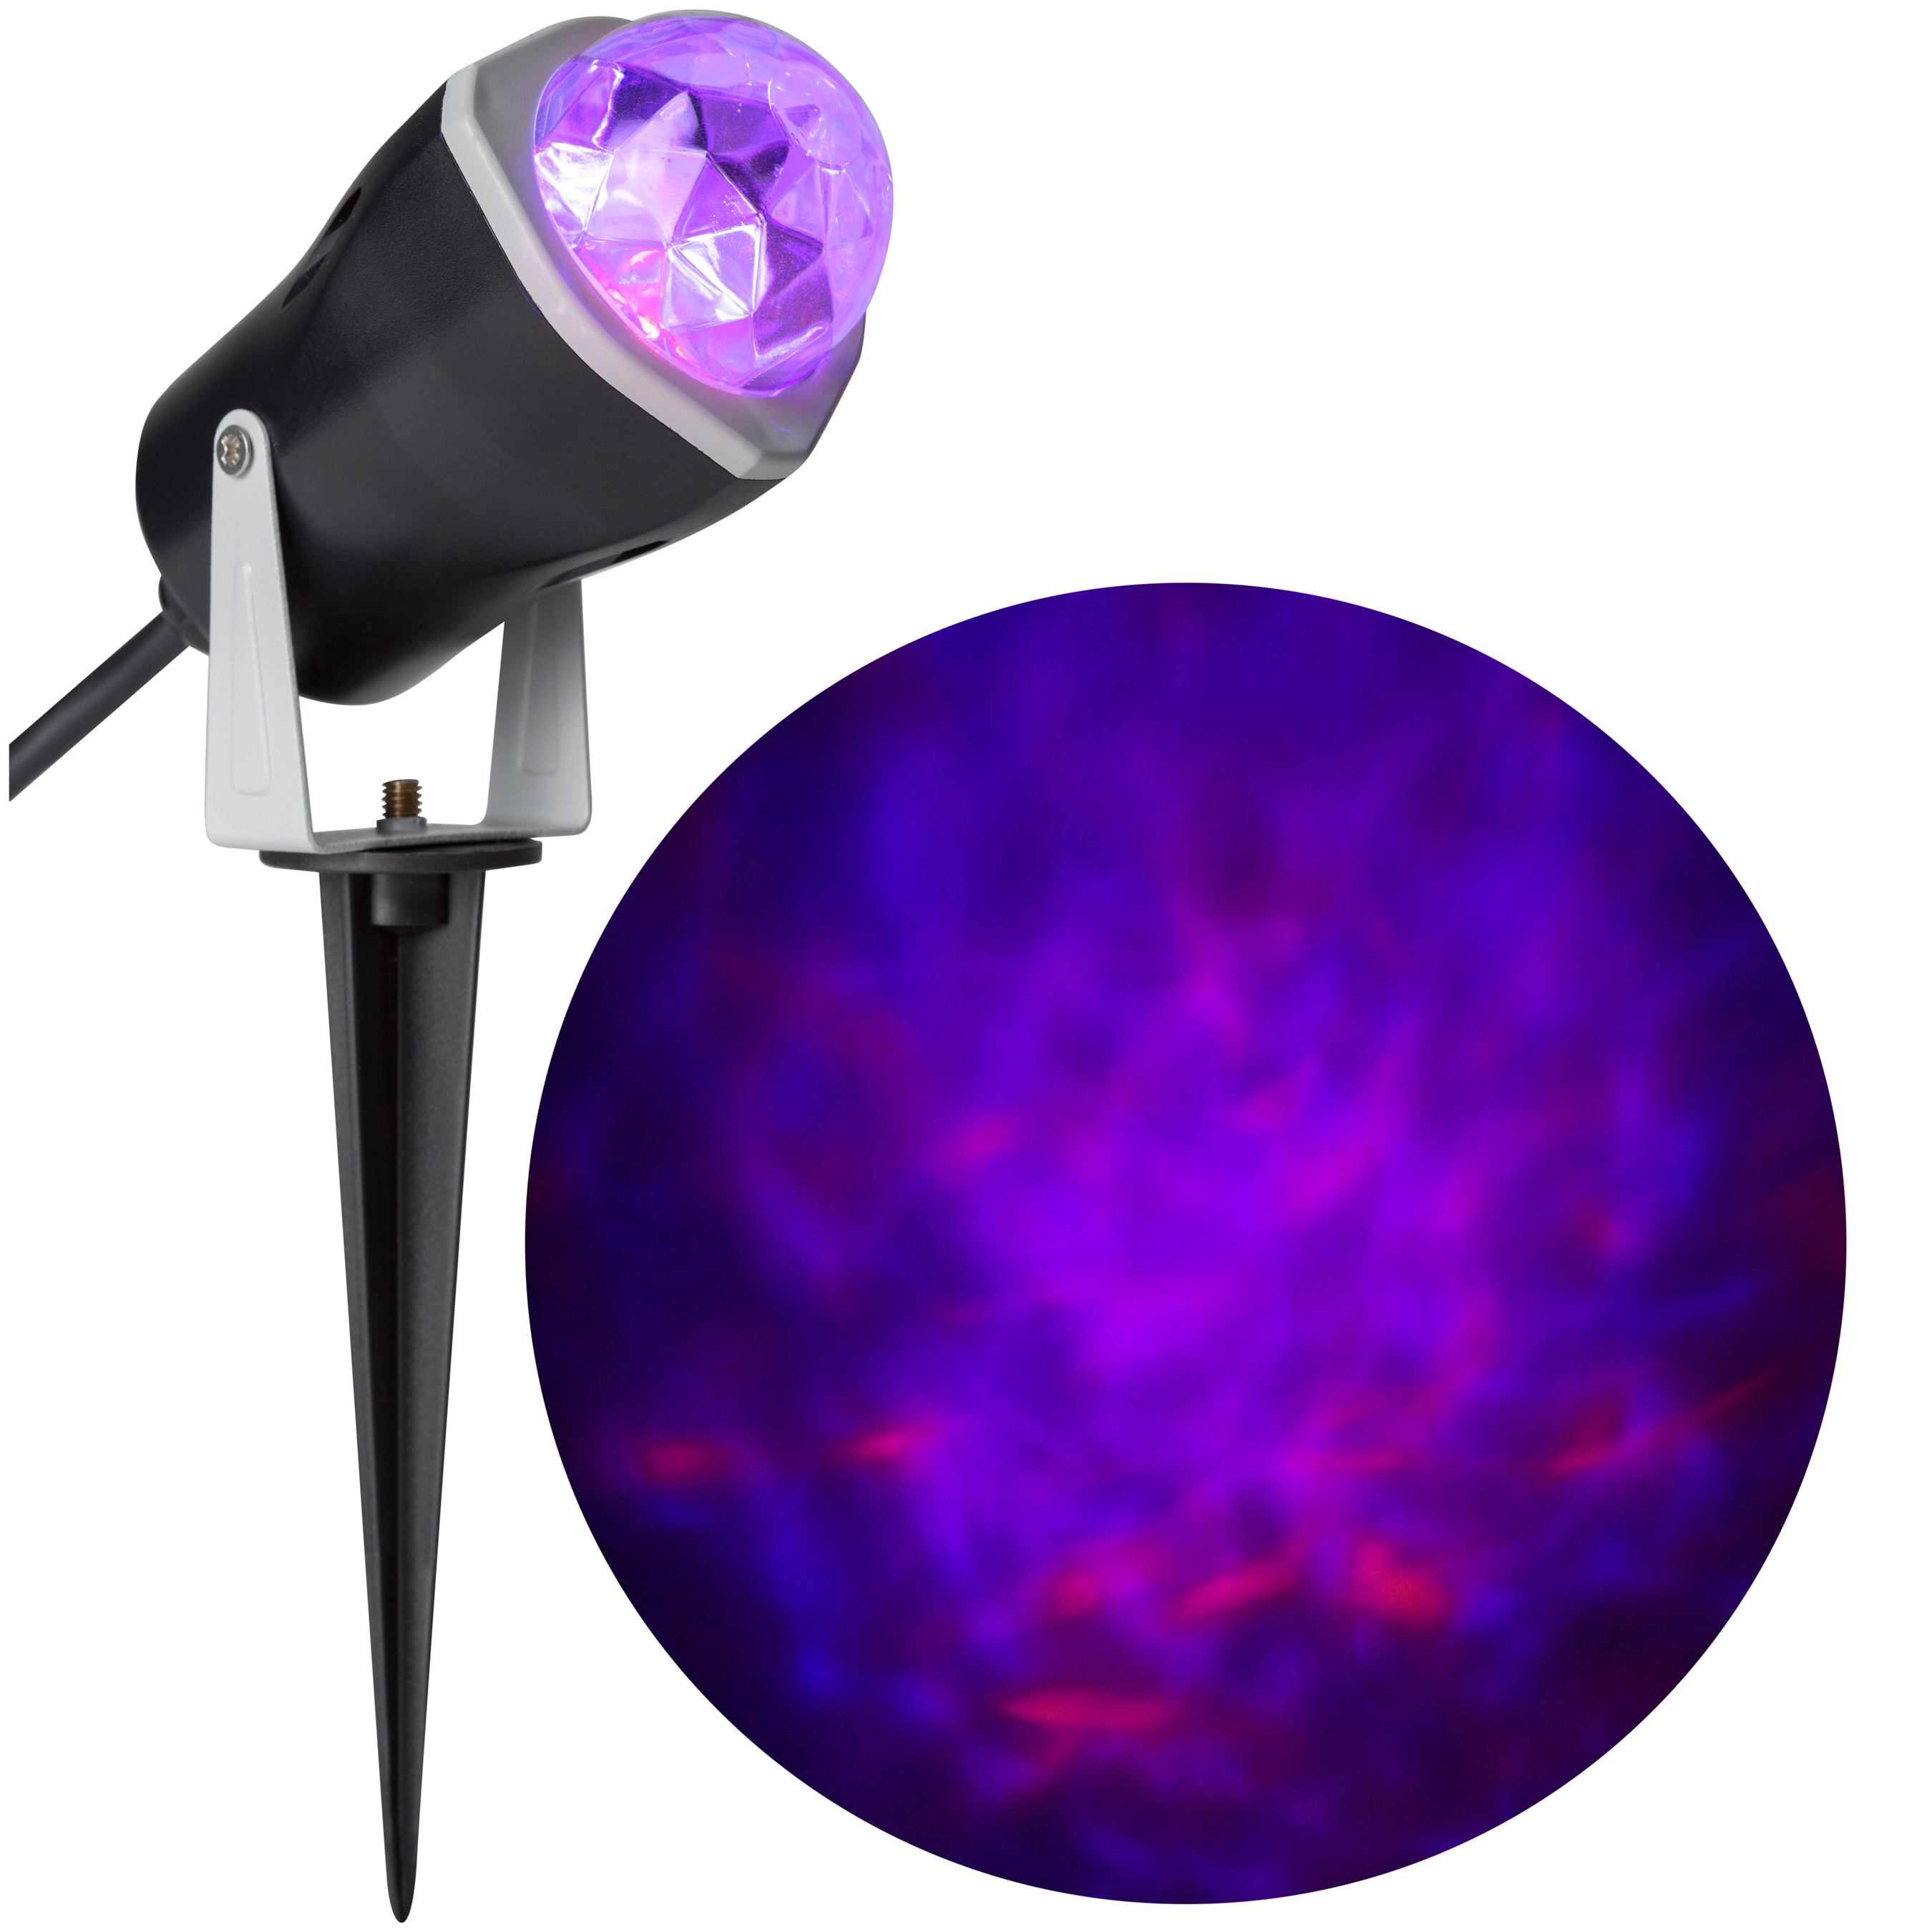 Gemmy Fire and Ice Multi-Function Purple/Orange Led Multi-Design Halloween Outdoor Stake Light Projector